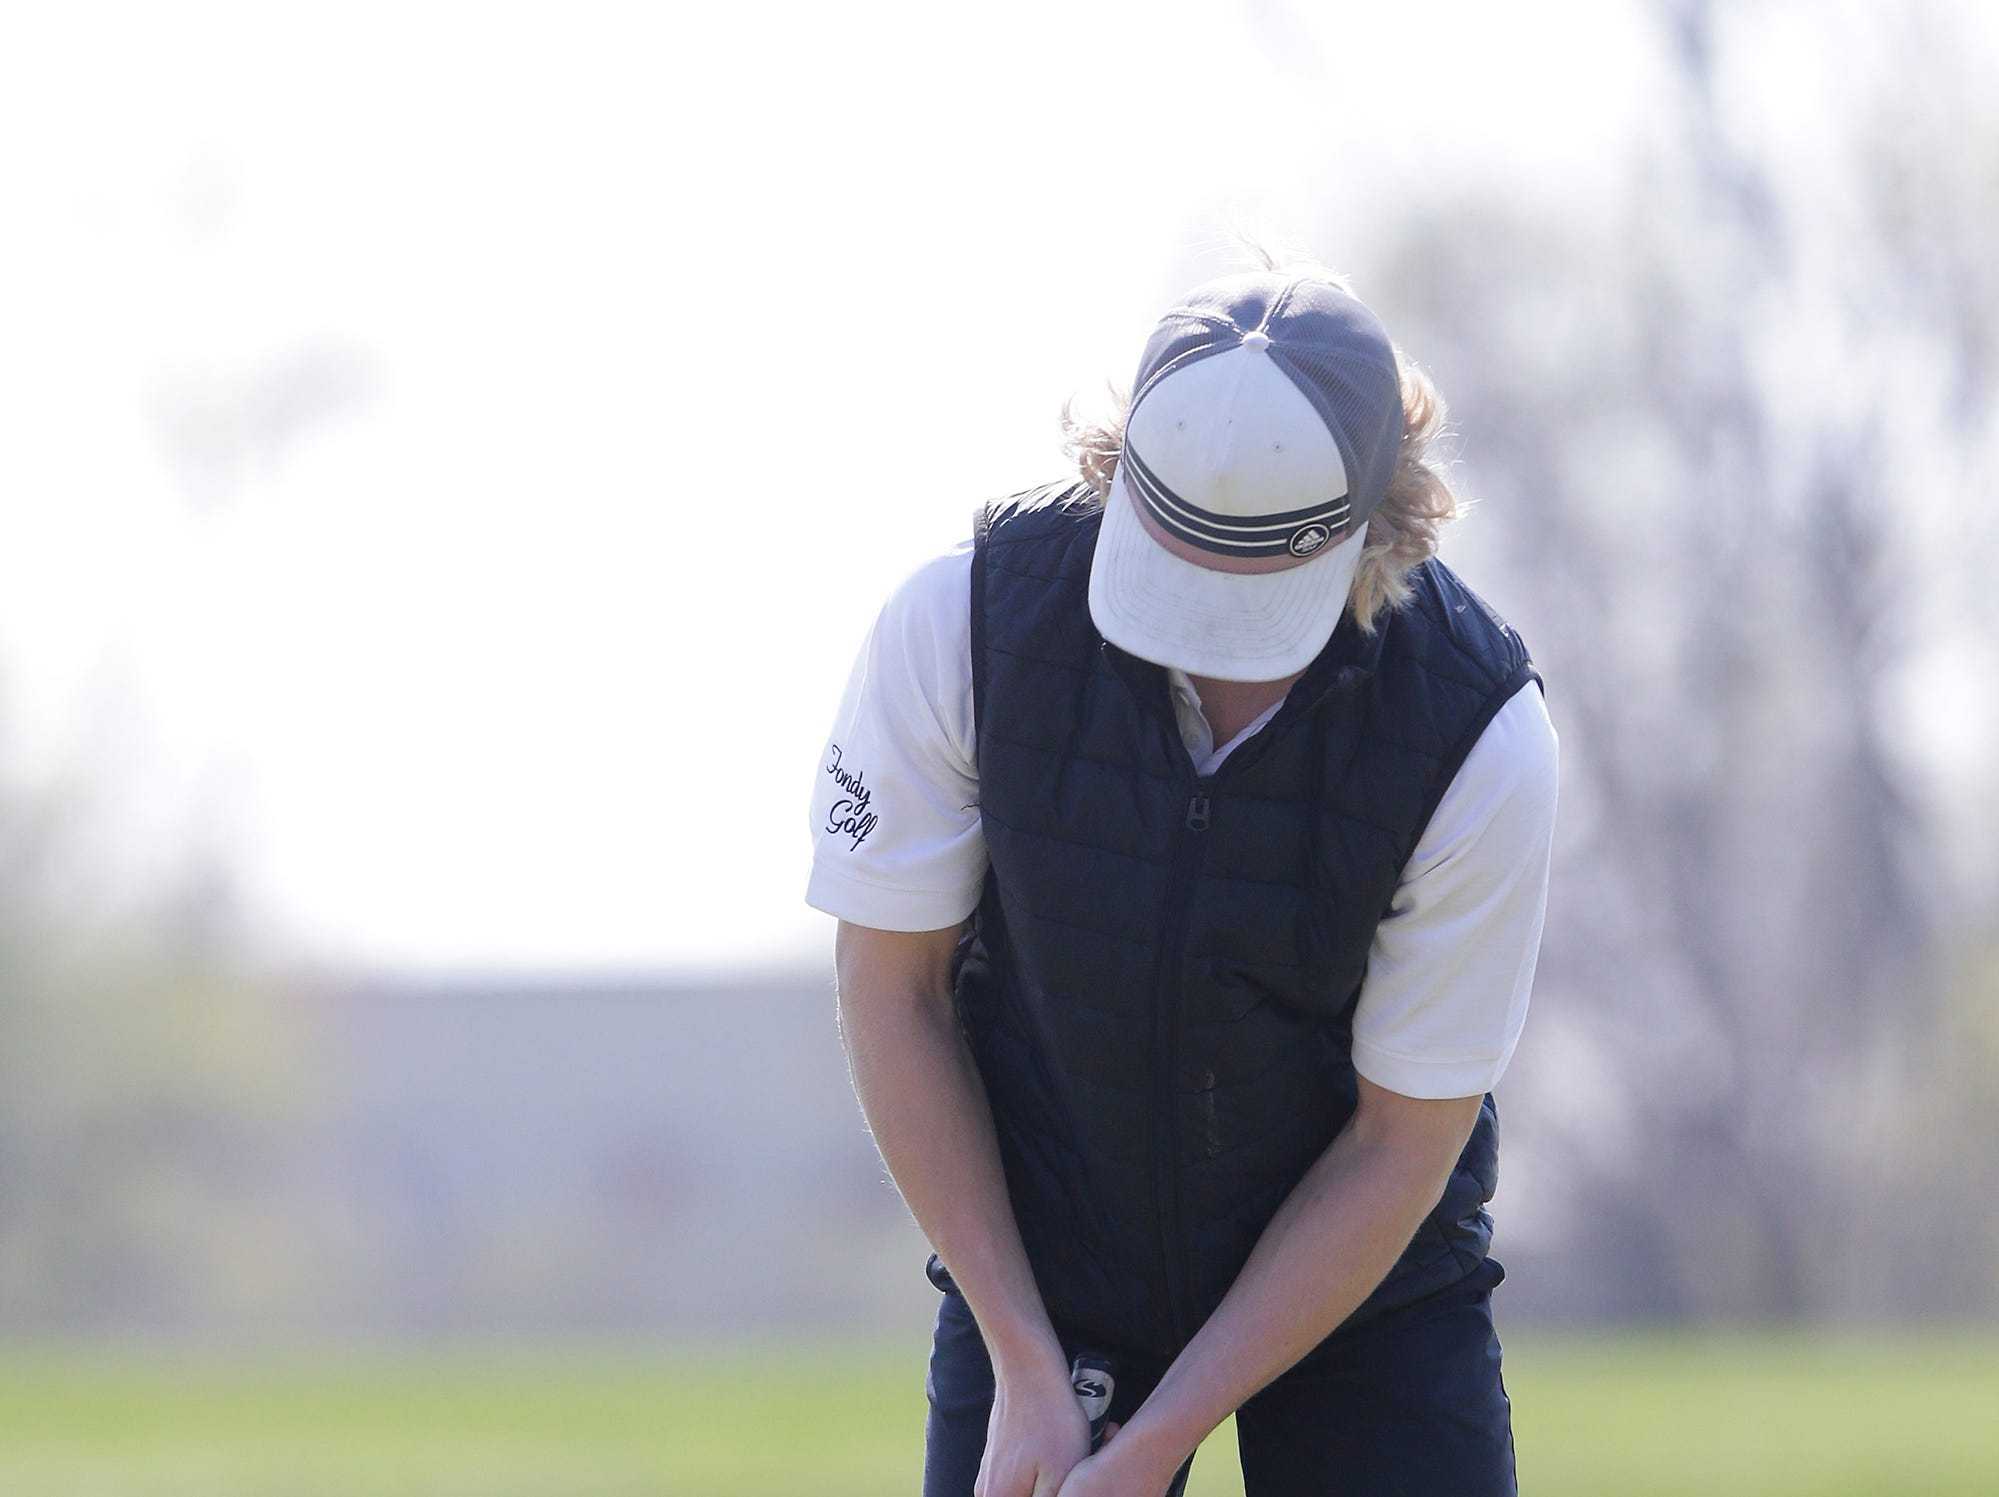 Jonah Duwell of Fond du Lac High School competes in the Fond du Lac High School golf invite Saturday, May 4, 2019 at Rolling Meadows Golf Course in Fond du Lac, Wis. Doug Raflik/USA TODAY NETWORK-Wisconsin